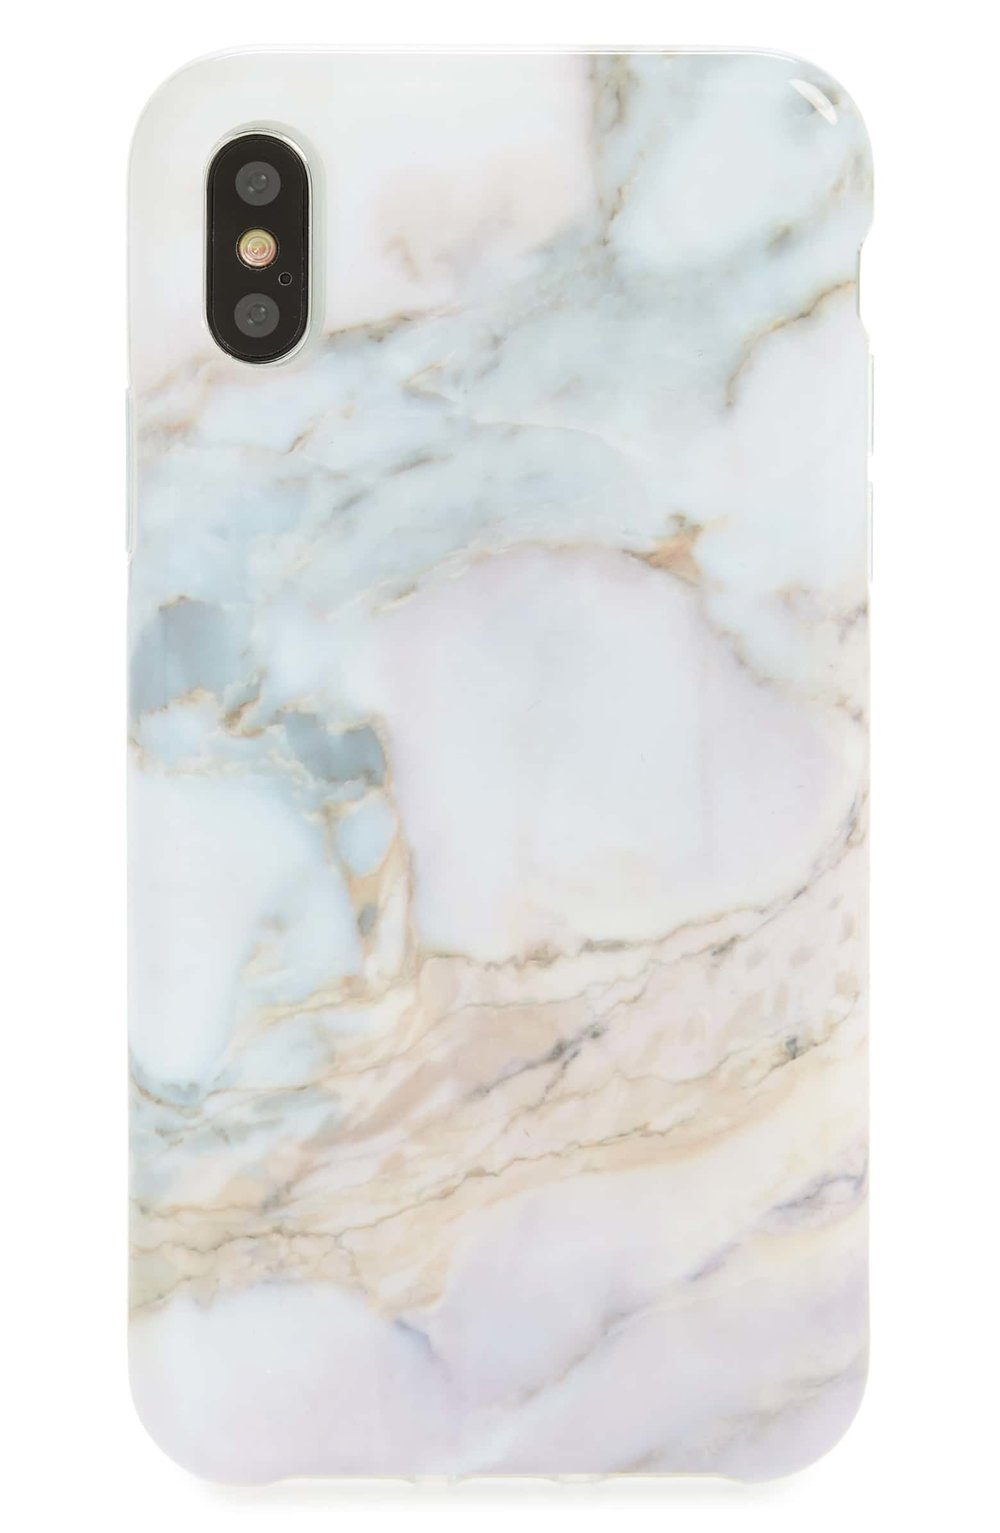 gemstone iphone cover.jpg